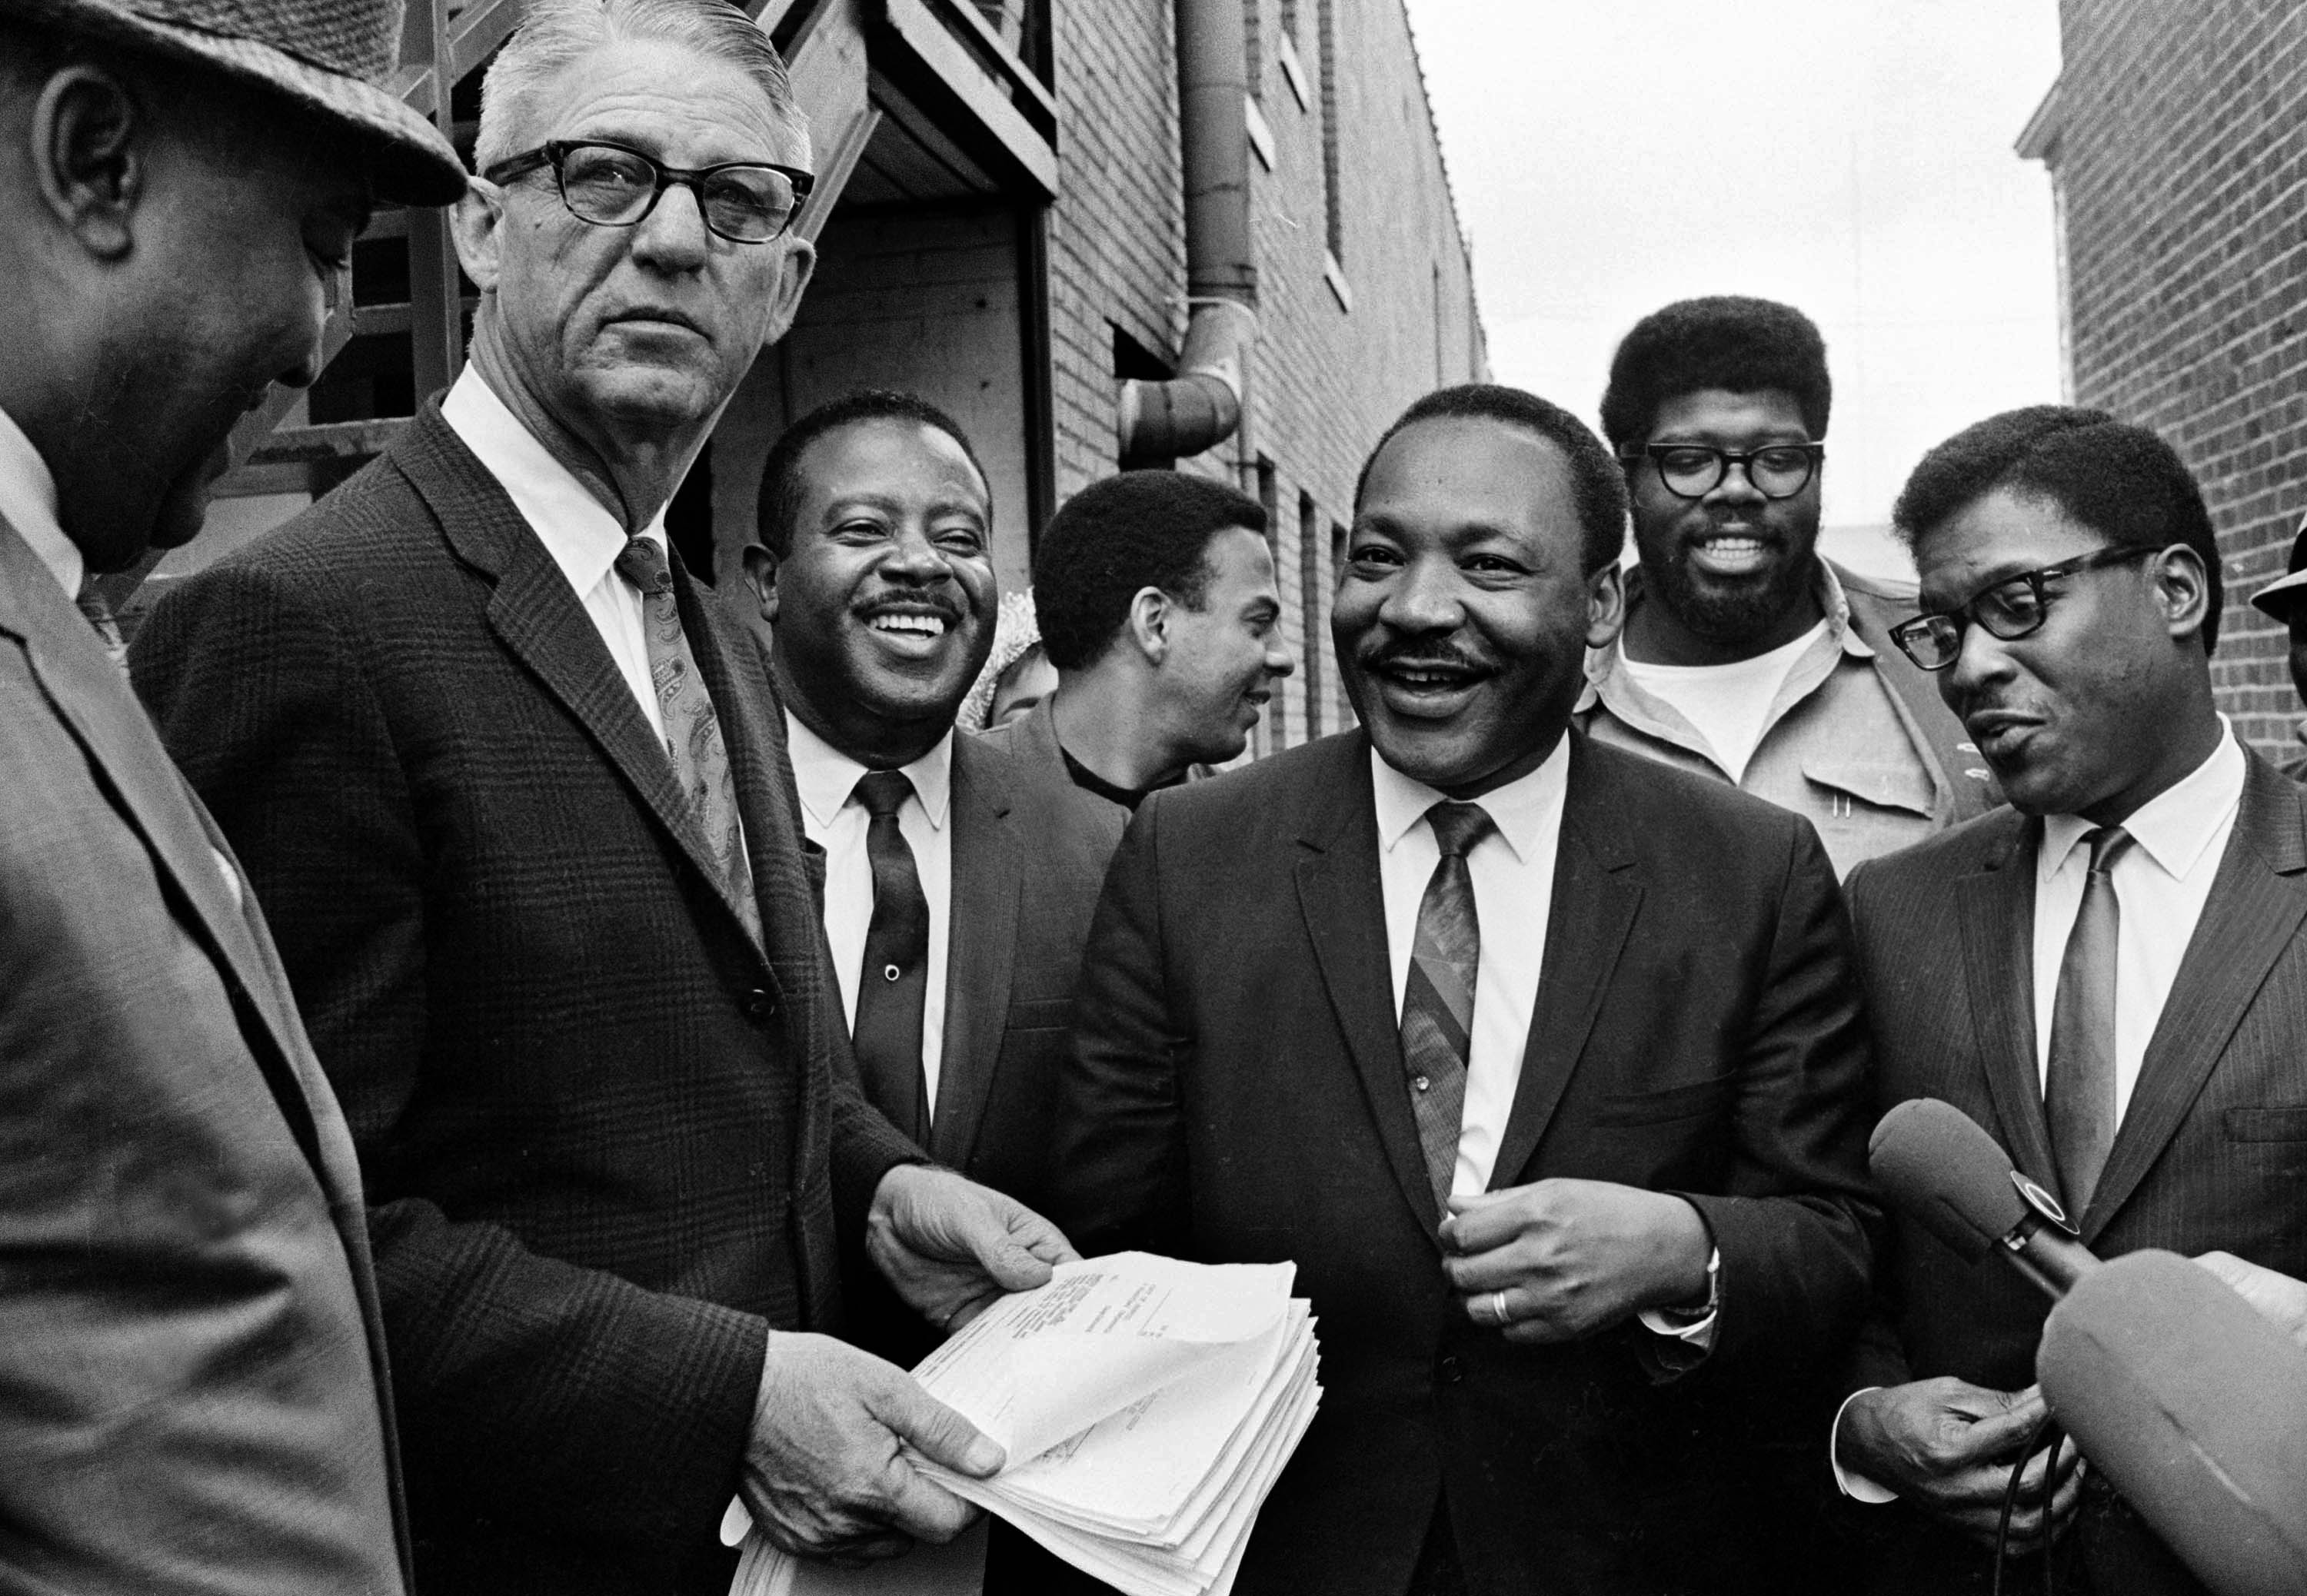 Dr. Martin Luther King Jr., center, and Rev. Ralph Abernathy, third from left, share a laugh outside court in Atlanta, Ga., Oct. 25, 1960.